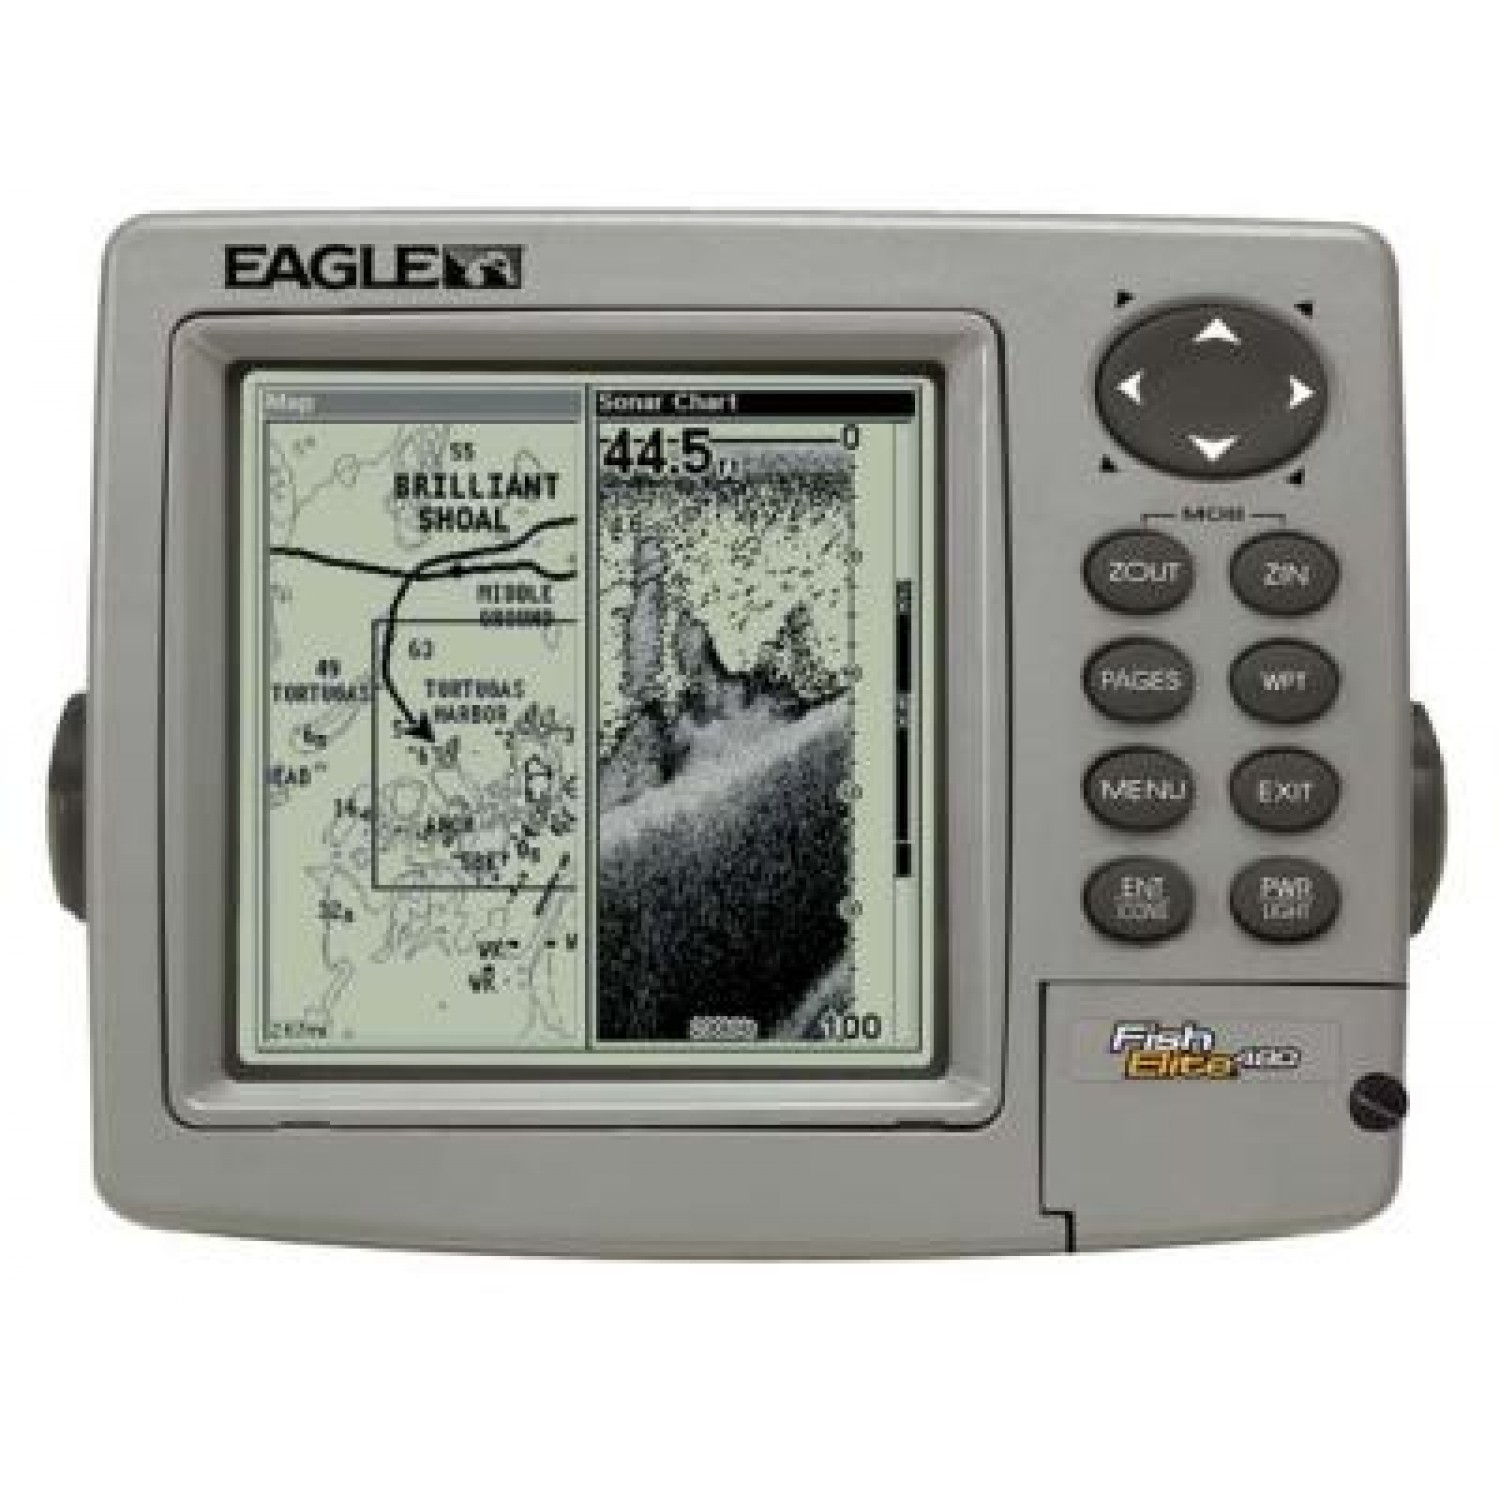 Eagle Fish Elite 480 - Combi